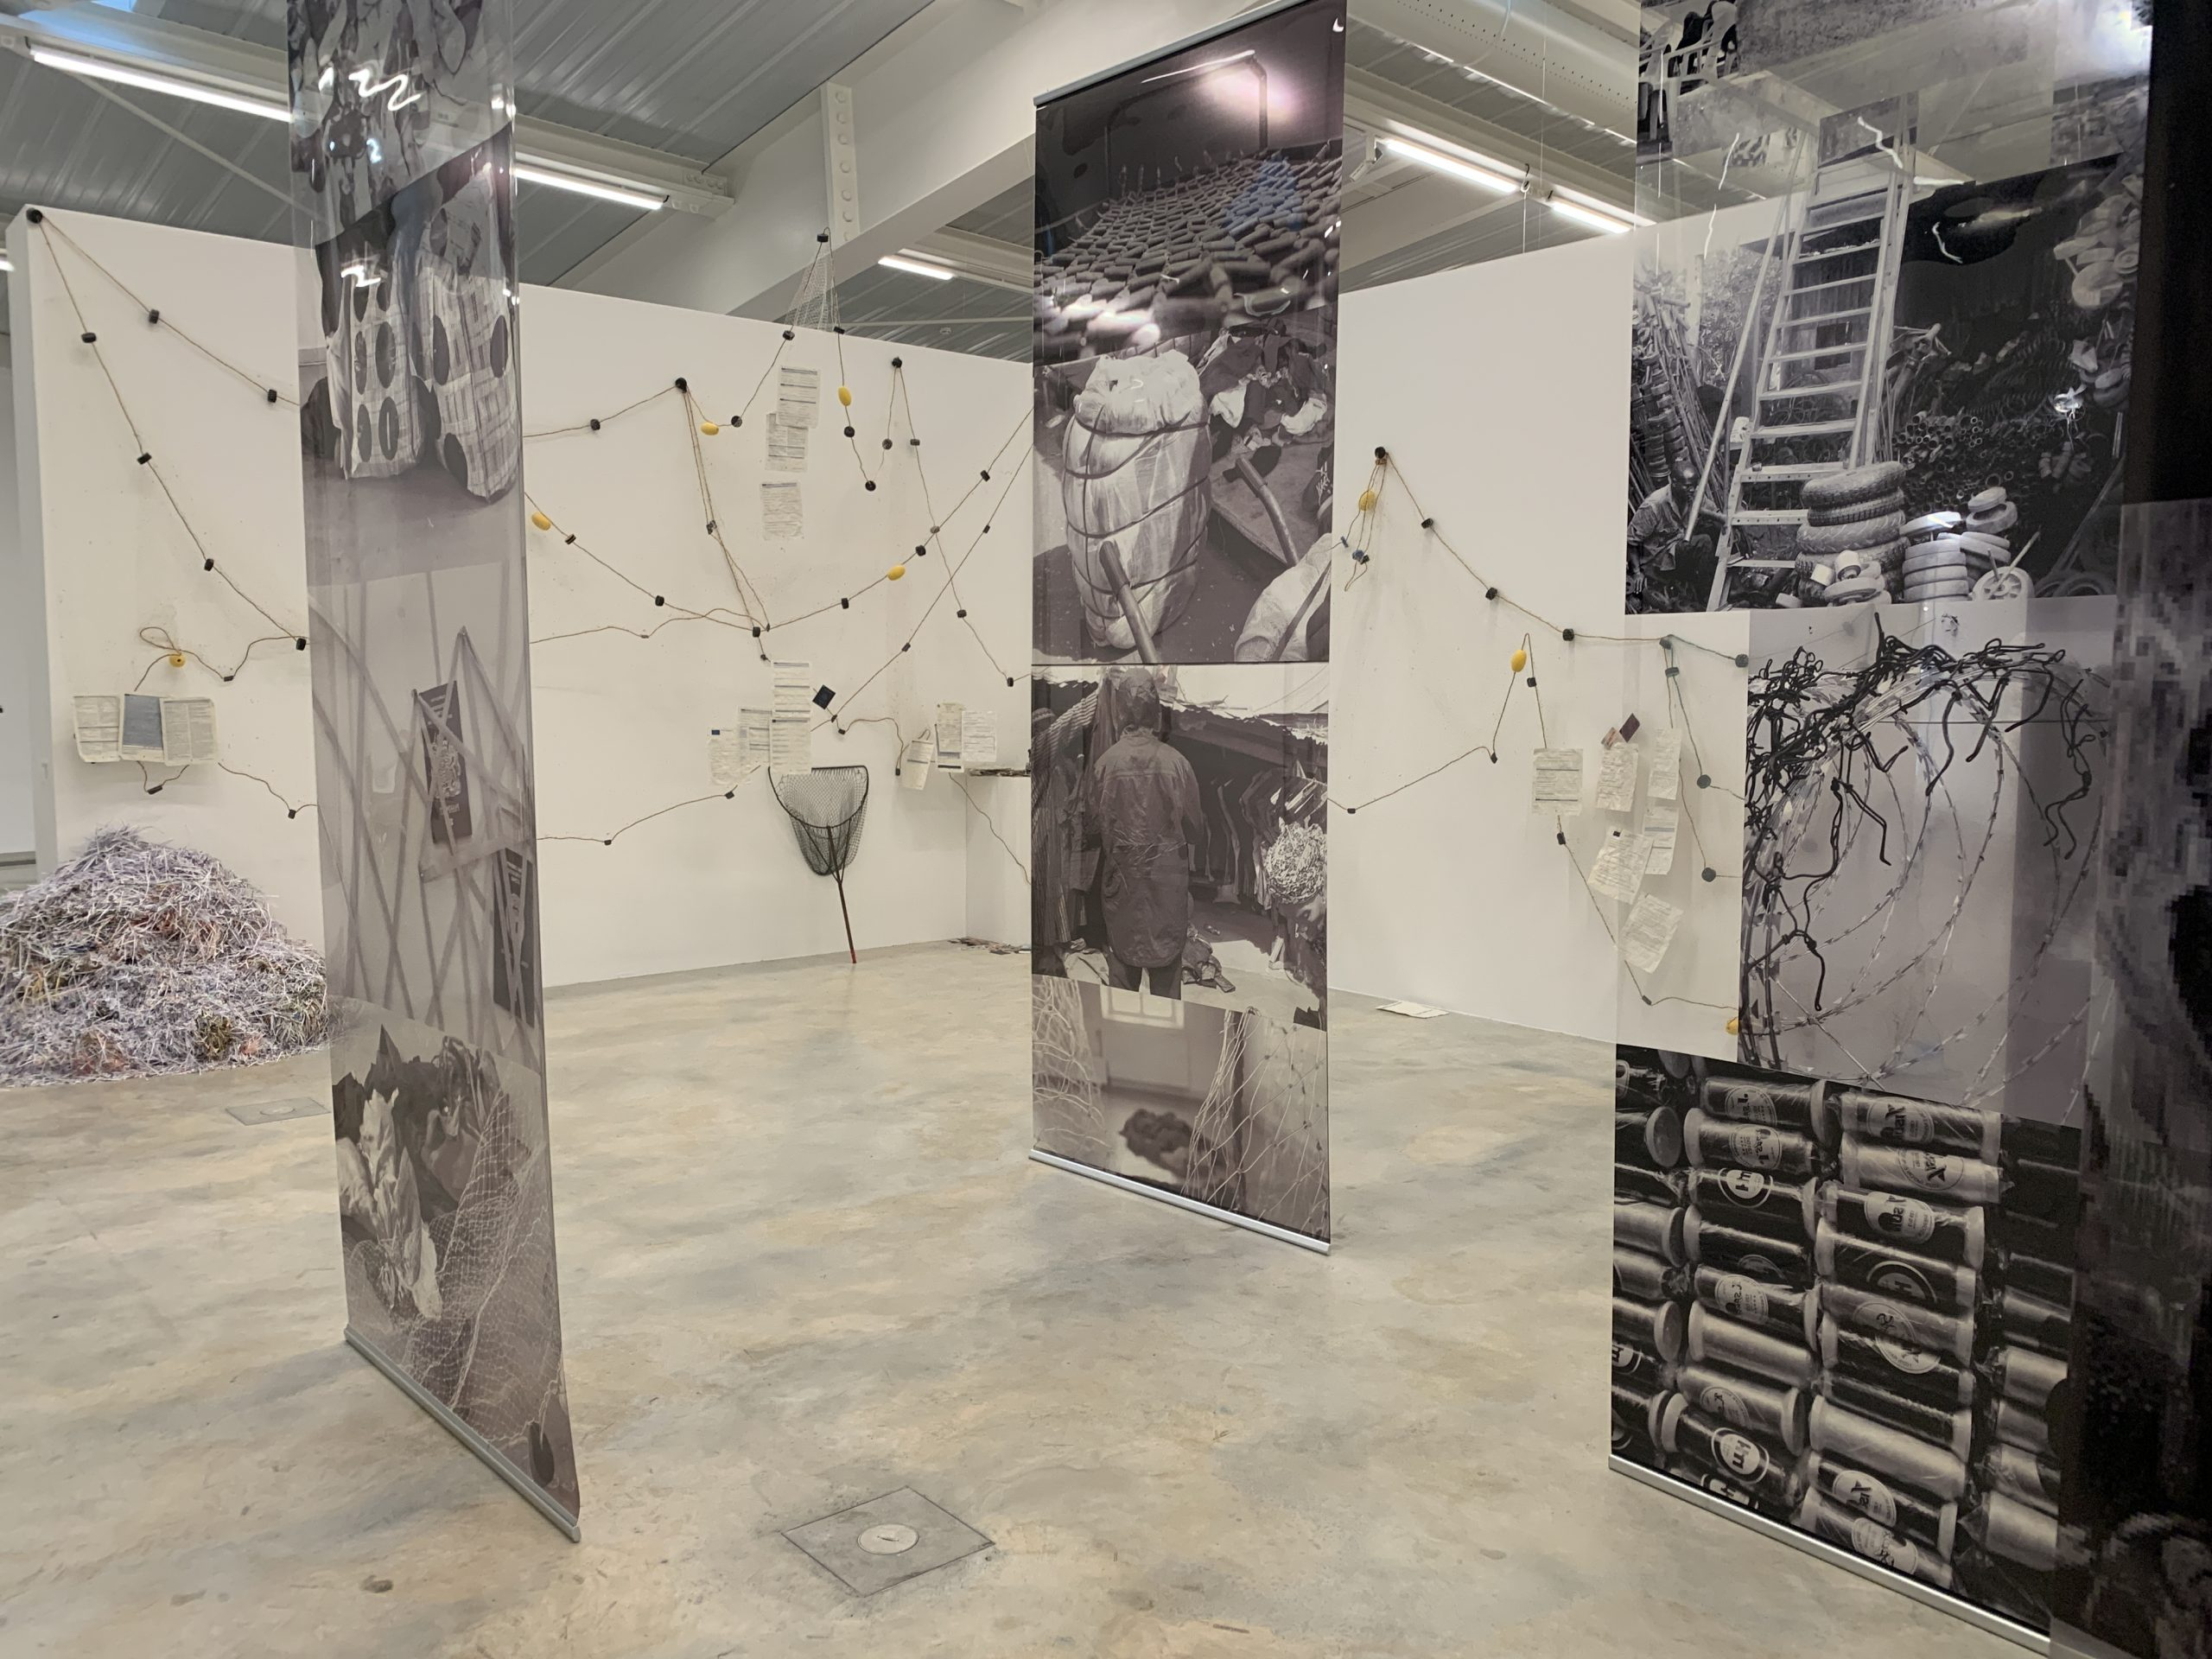 Africa2020 Season: Ndidi Dike, 'Constellations, Floating Spaces and Remembrance, 2016-2017. Installation view at 'Memoria: accounts of another History' at Frac Nouvelle Aquitane. Photo credit: artness